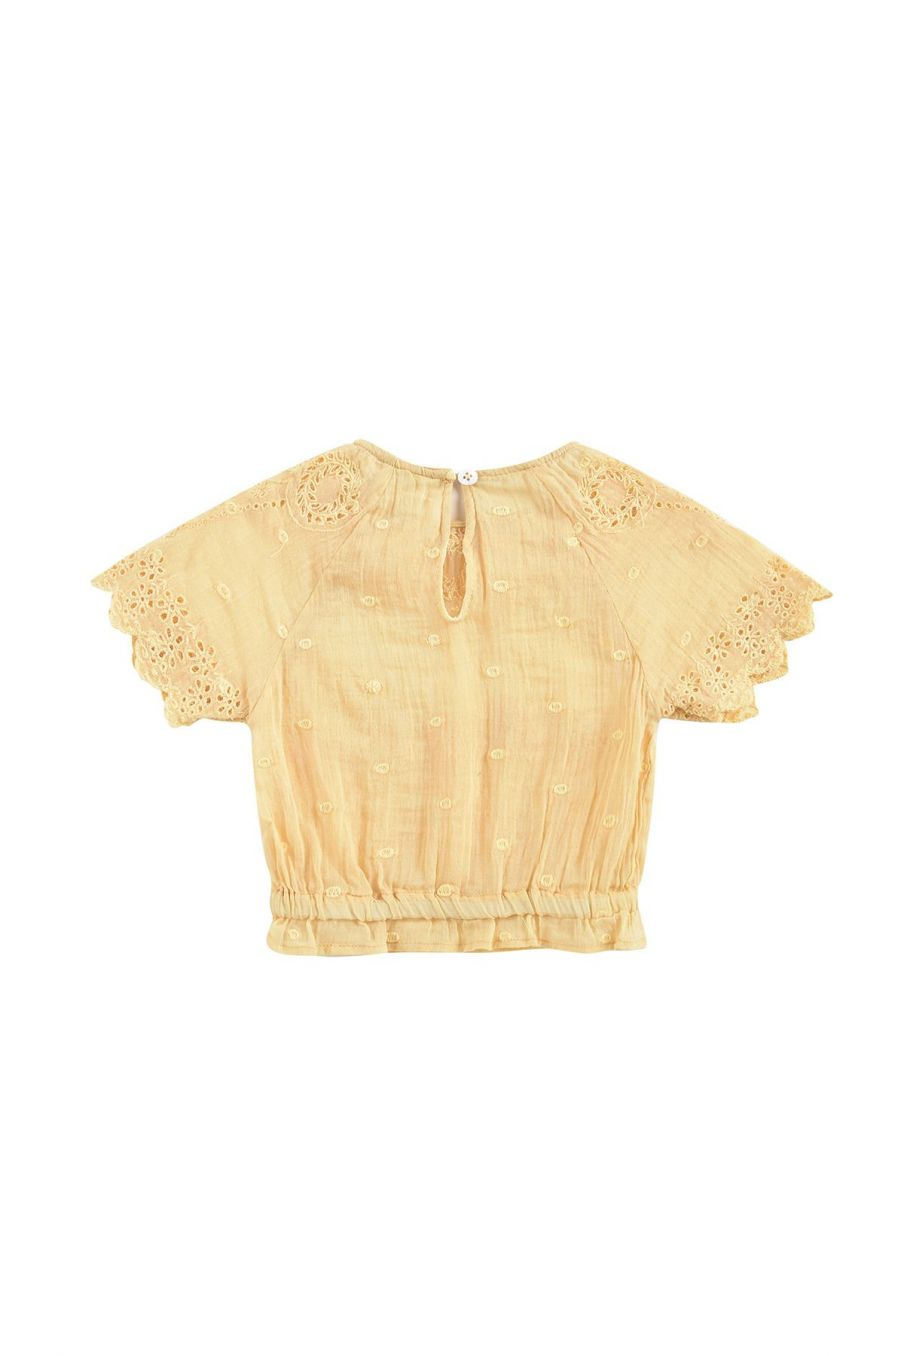 boheme chic vintage blouse bébé fille lina soft honey plumetis